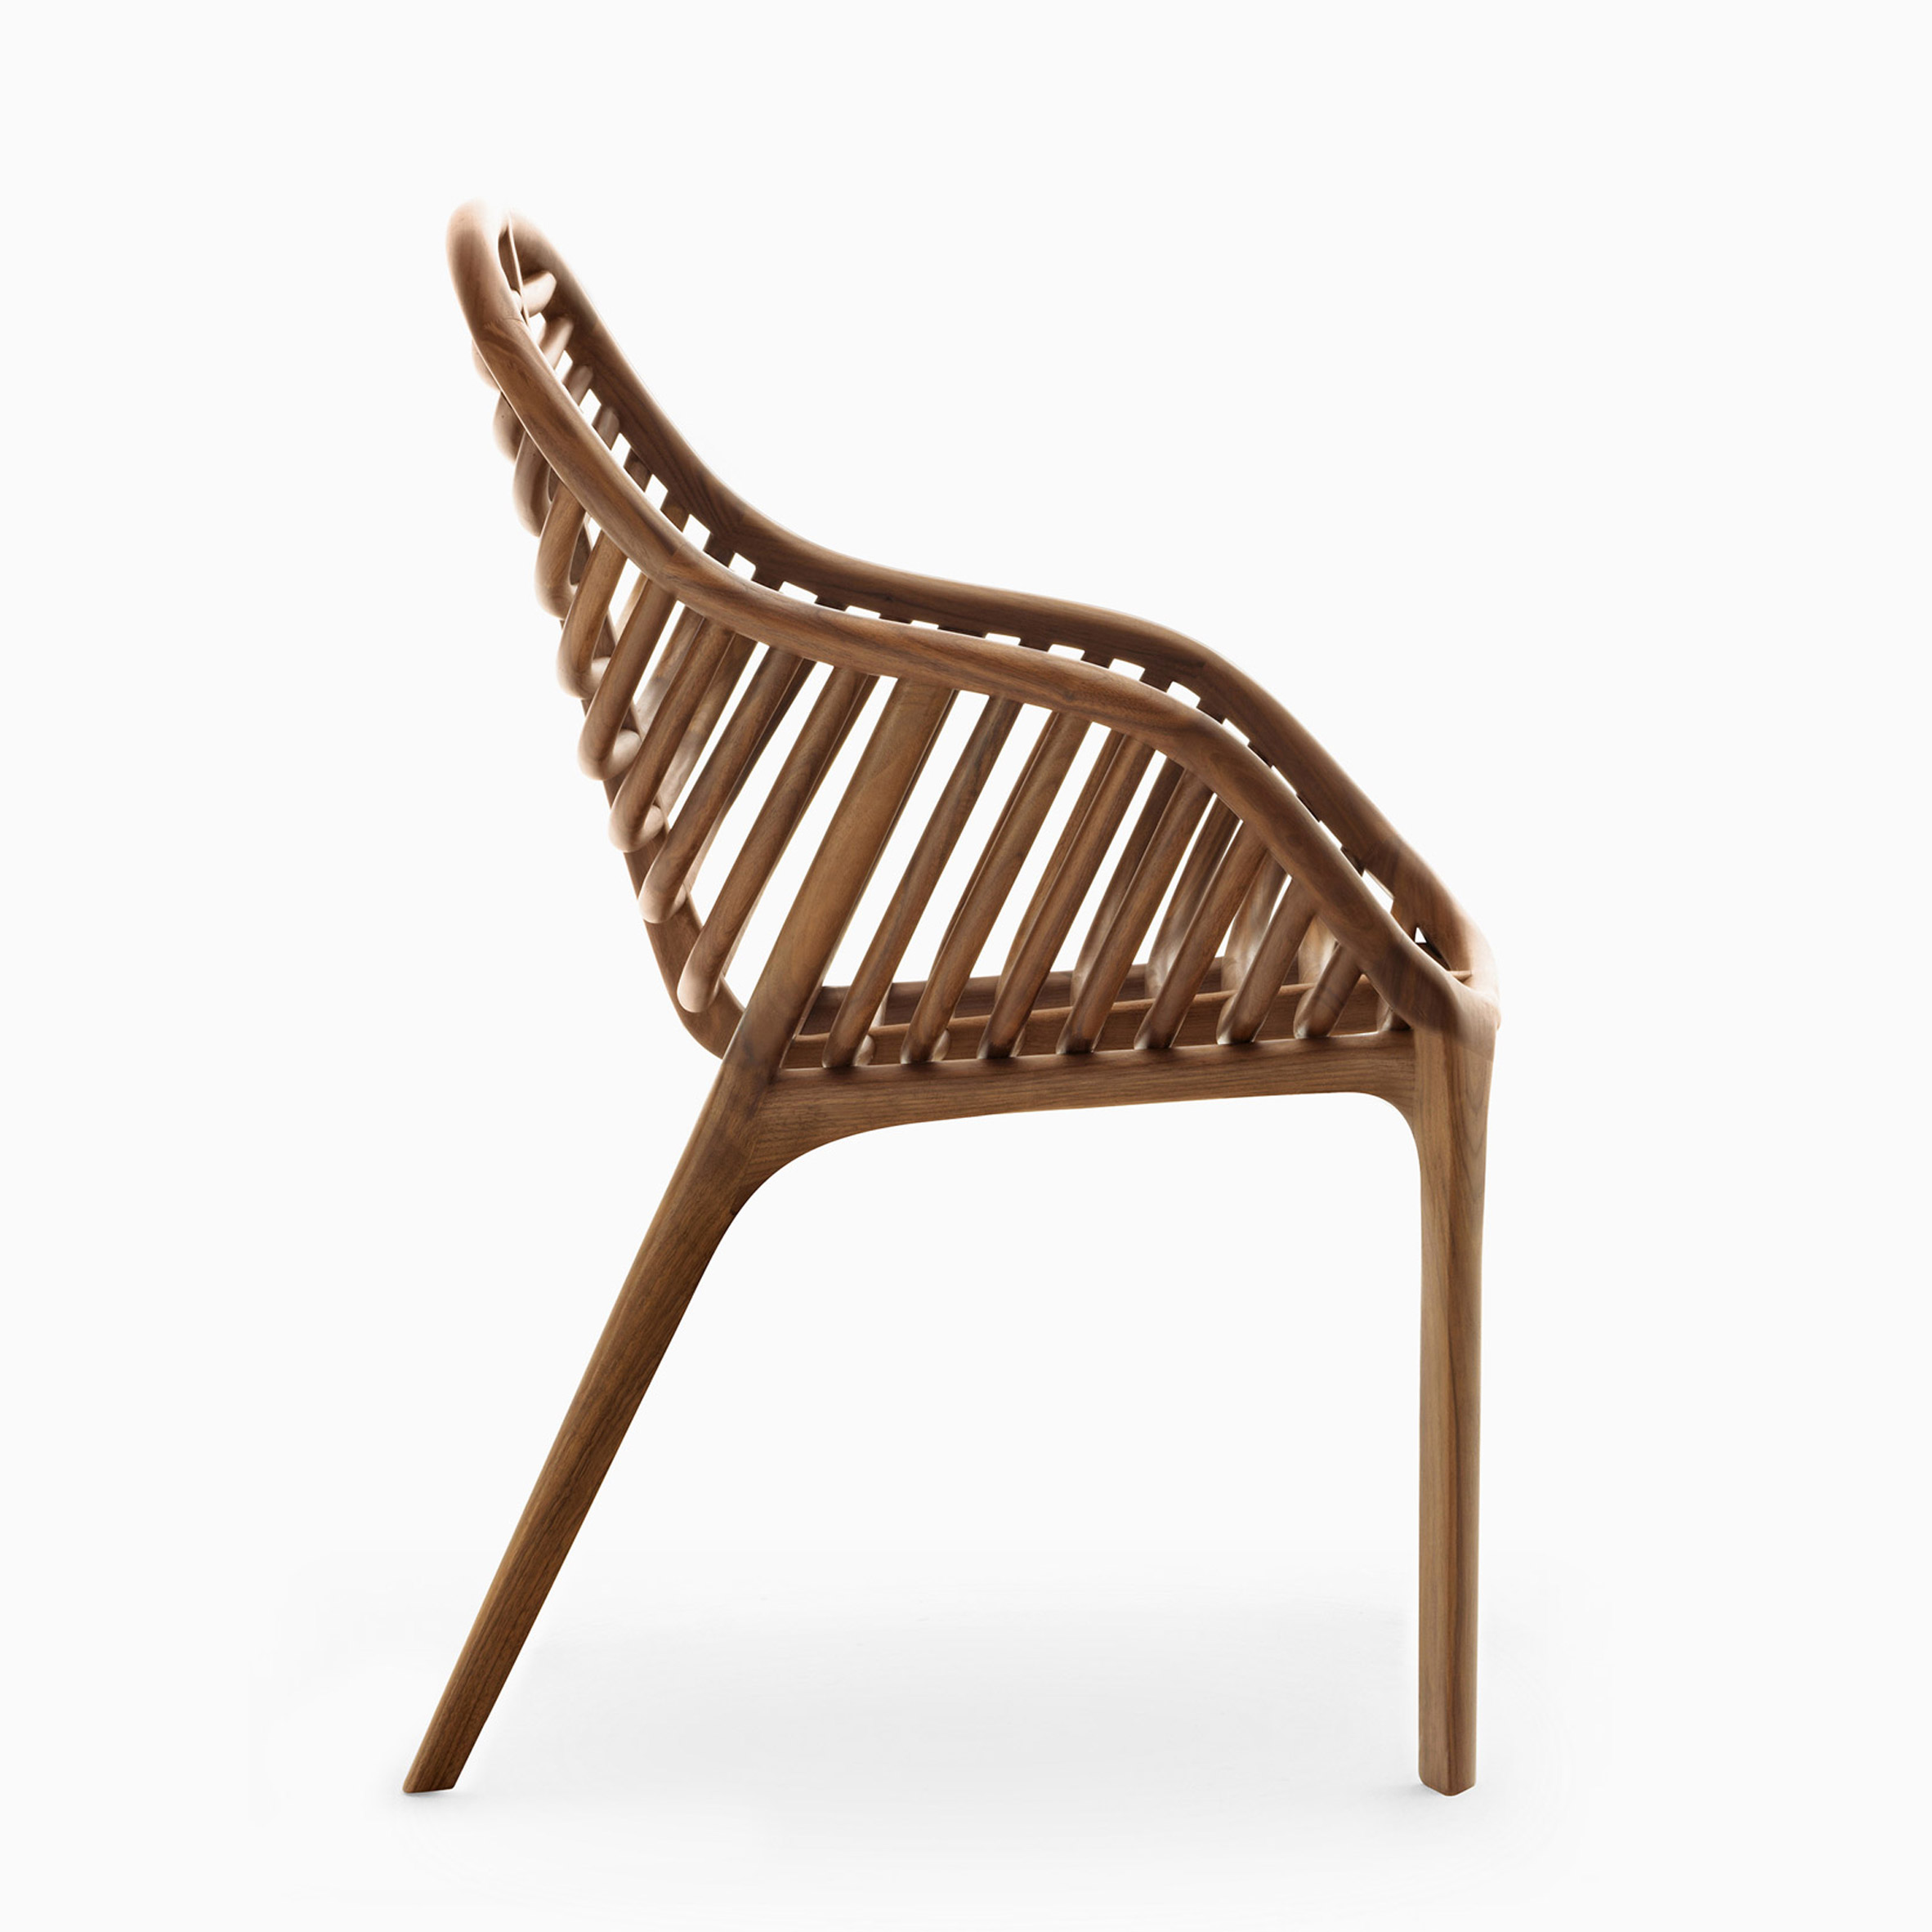 Pam chair by Studioforma